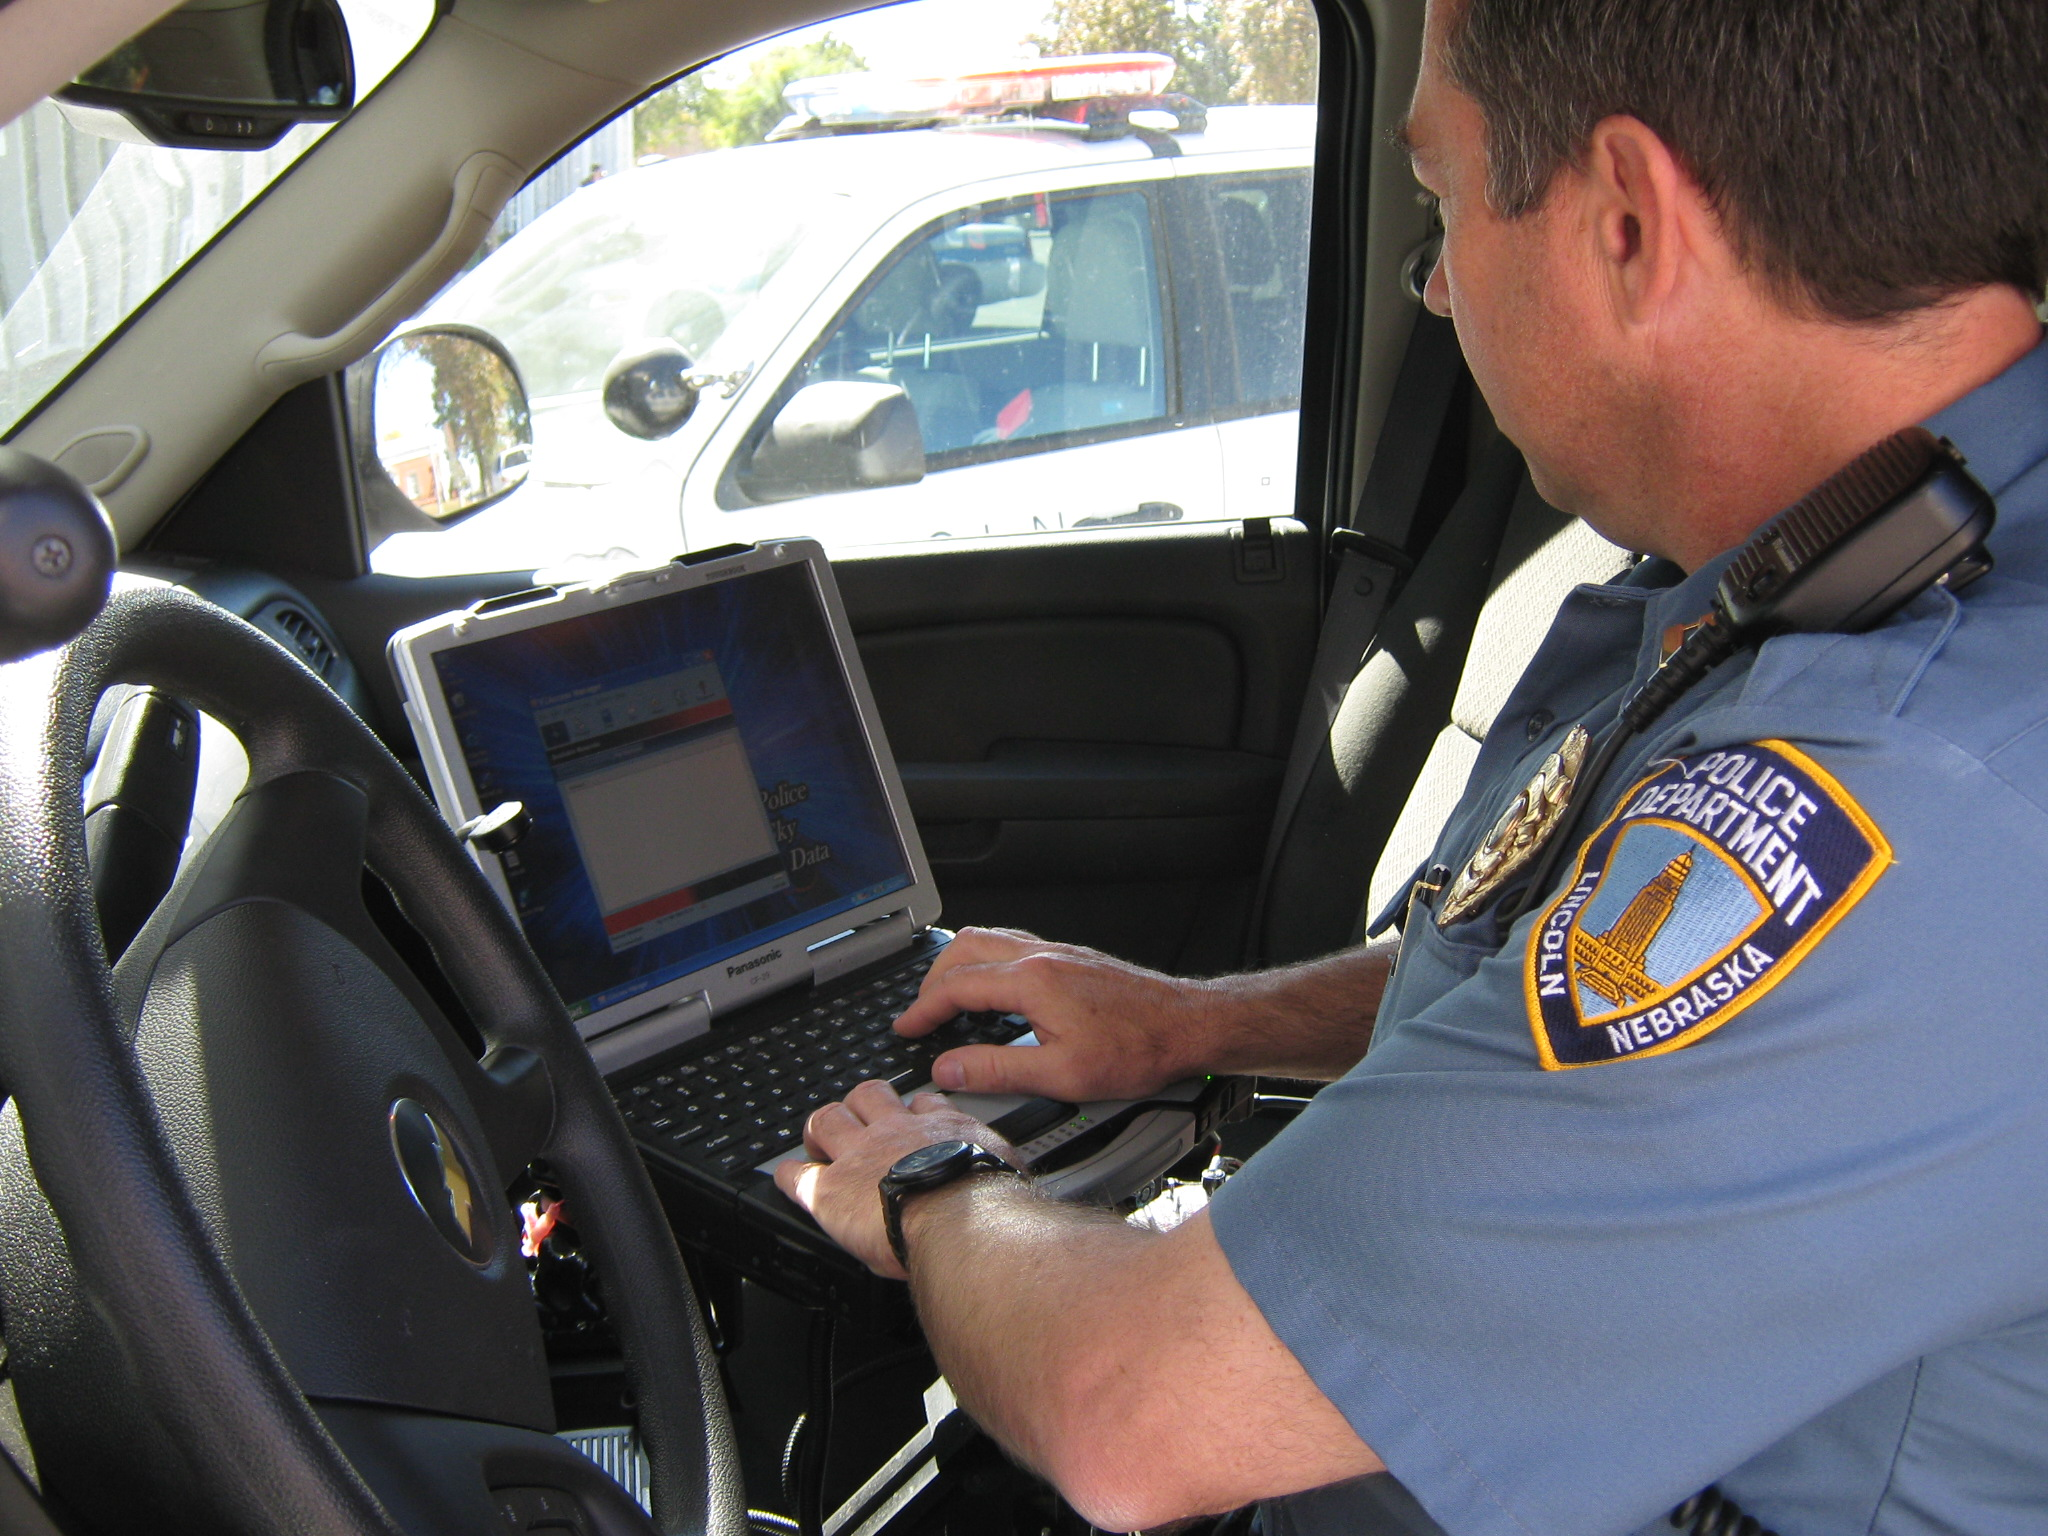 Captain Jim Davidsaver of the Lincoln Police Department uses the mobile data computer in his cruiser. UNL researchers are working with LPD to test smart phones and GPS-enabled laptops to improve patrol duties.